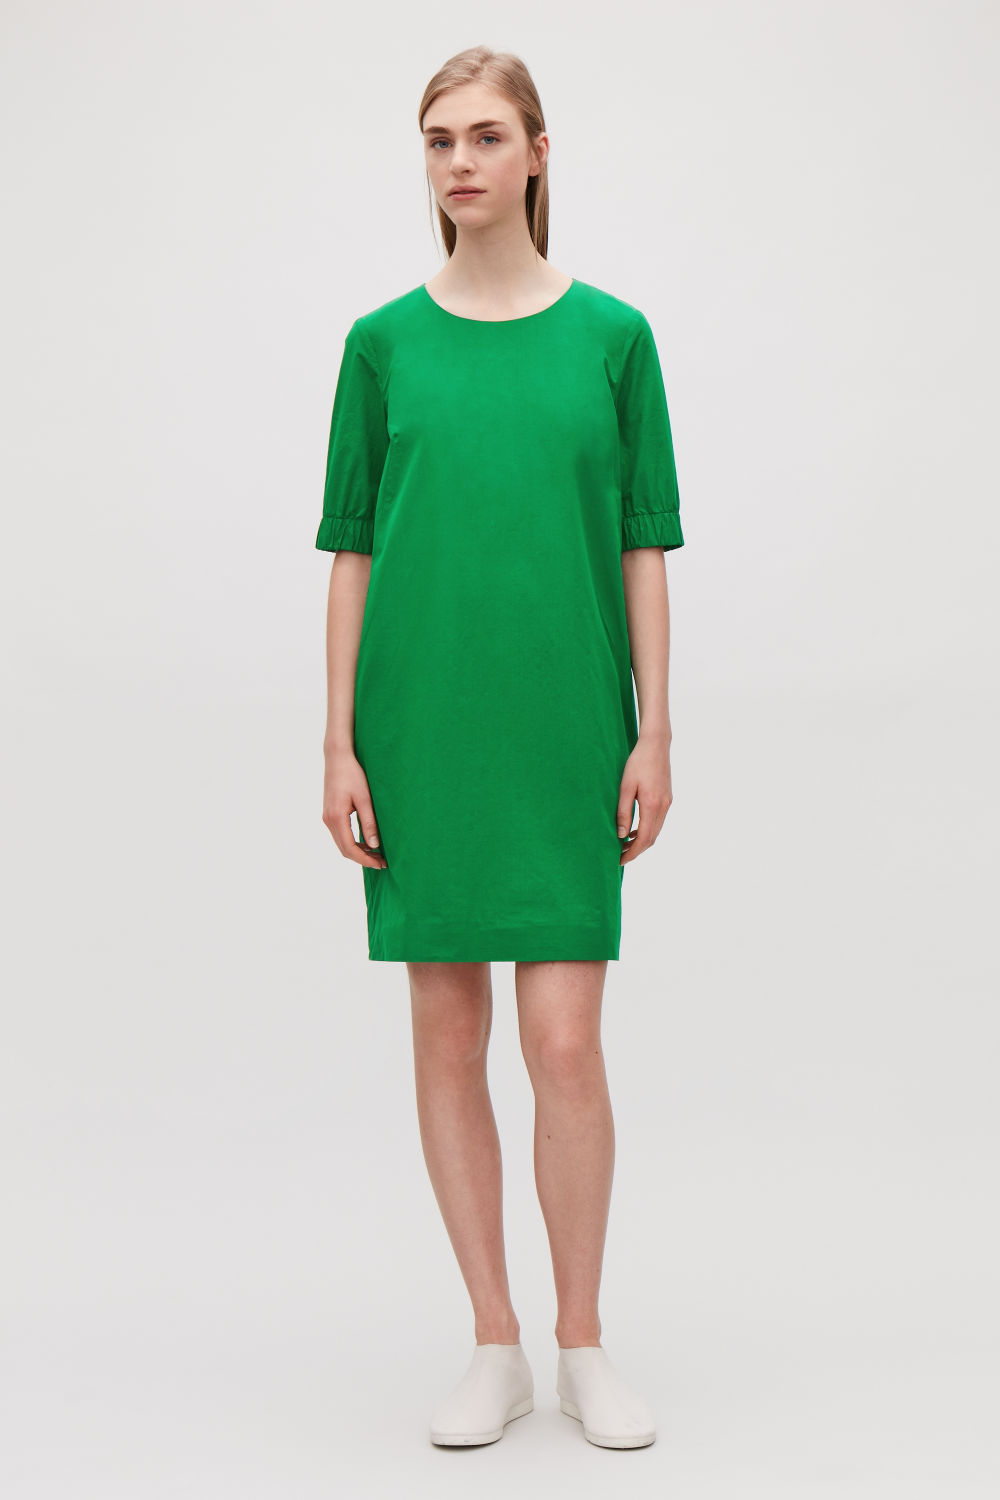 COS DRESS WITH ELASTICATED SLEEVES,Amazon green